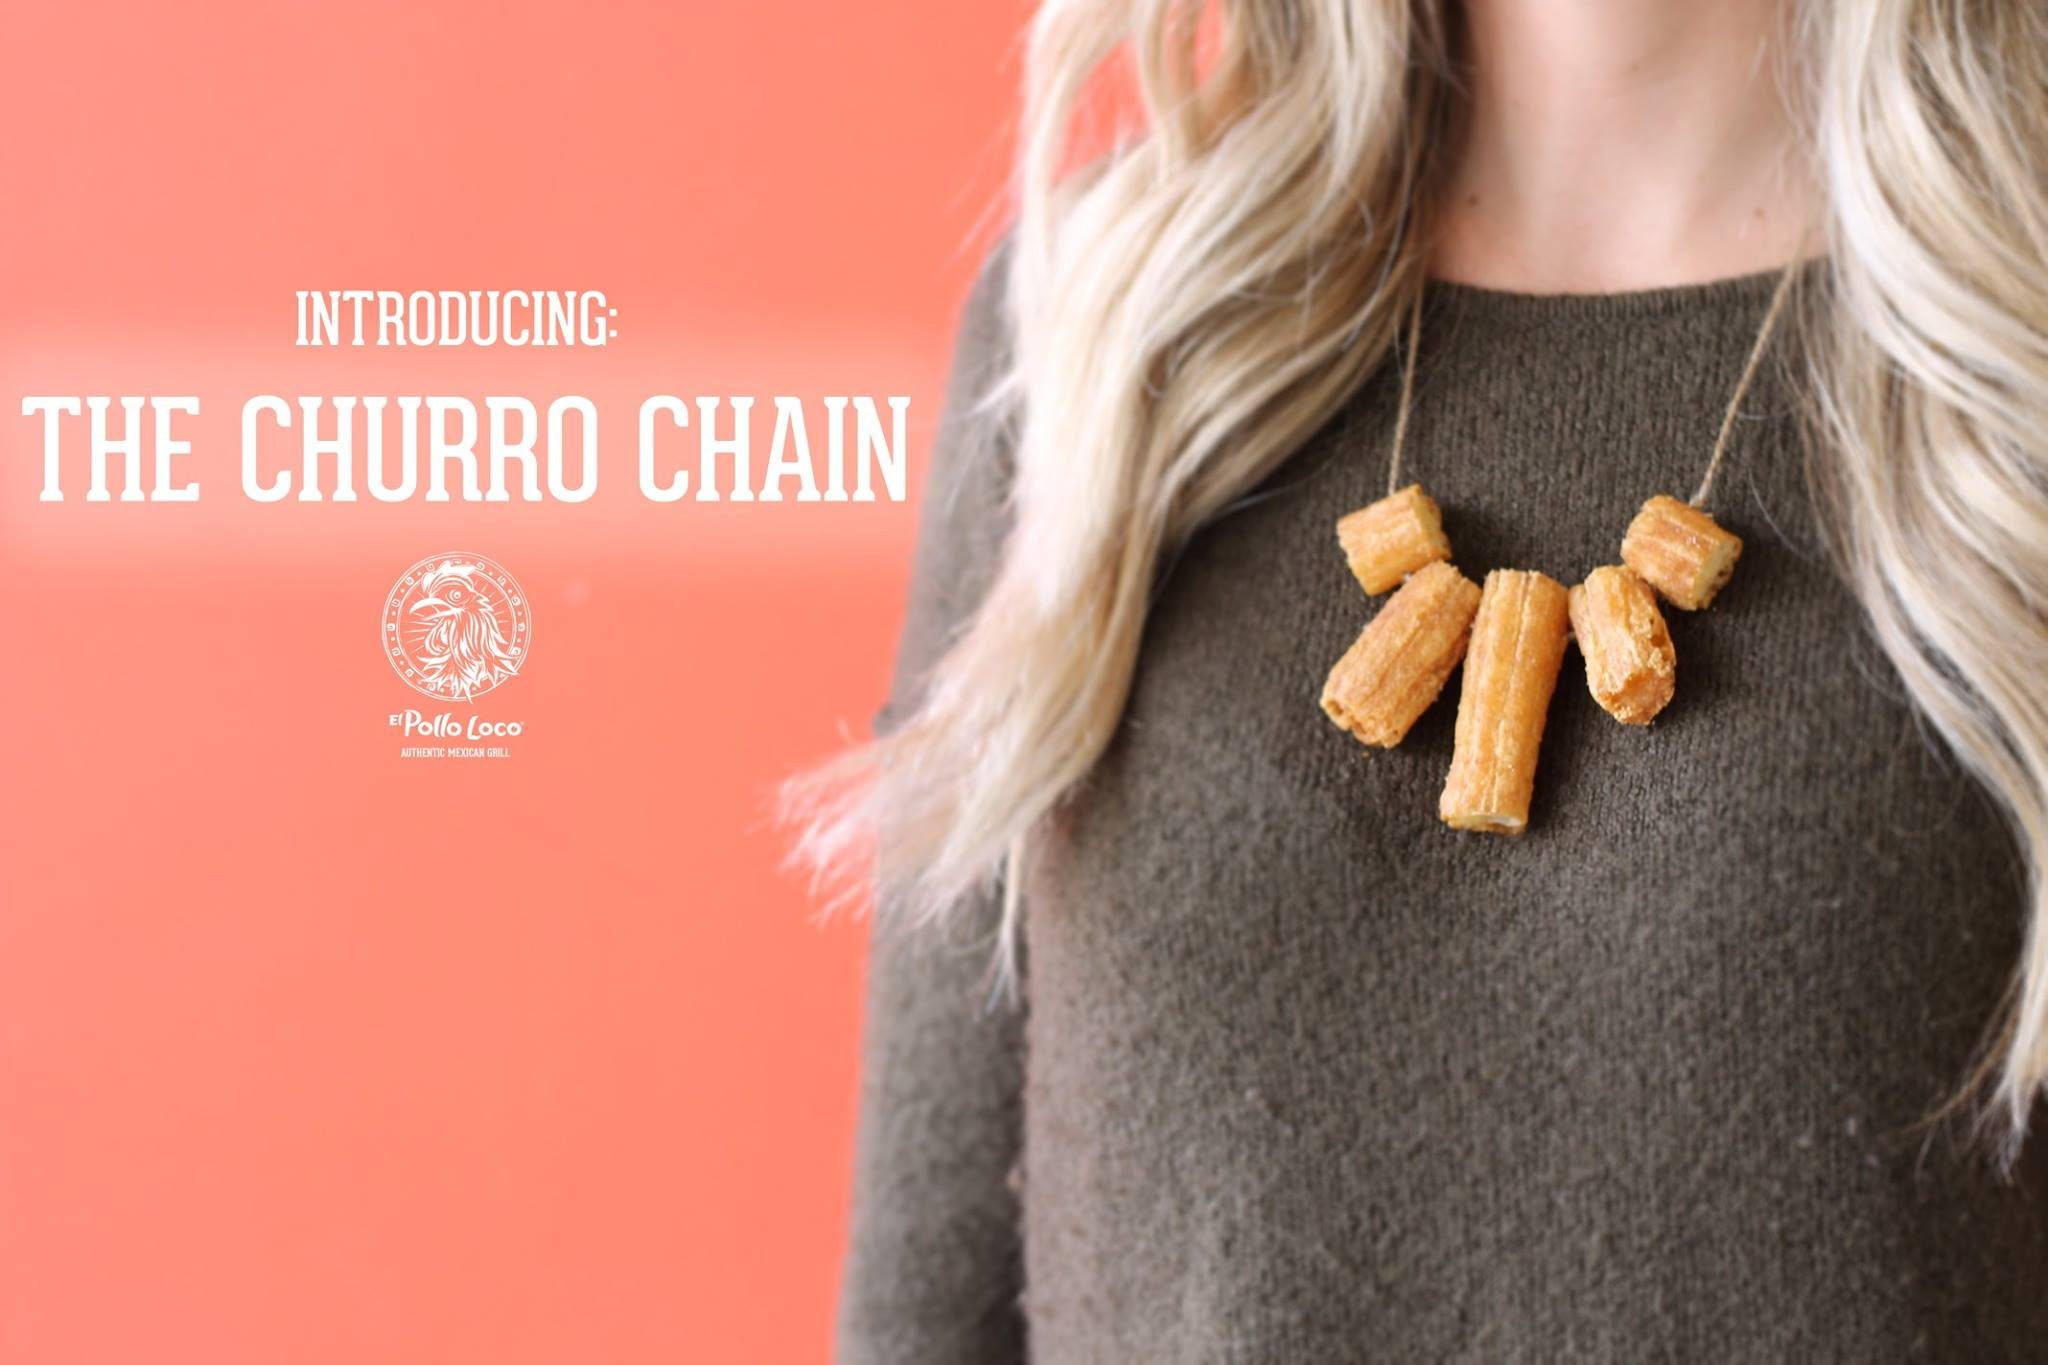 El Pollo Loco churro chain